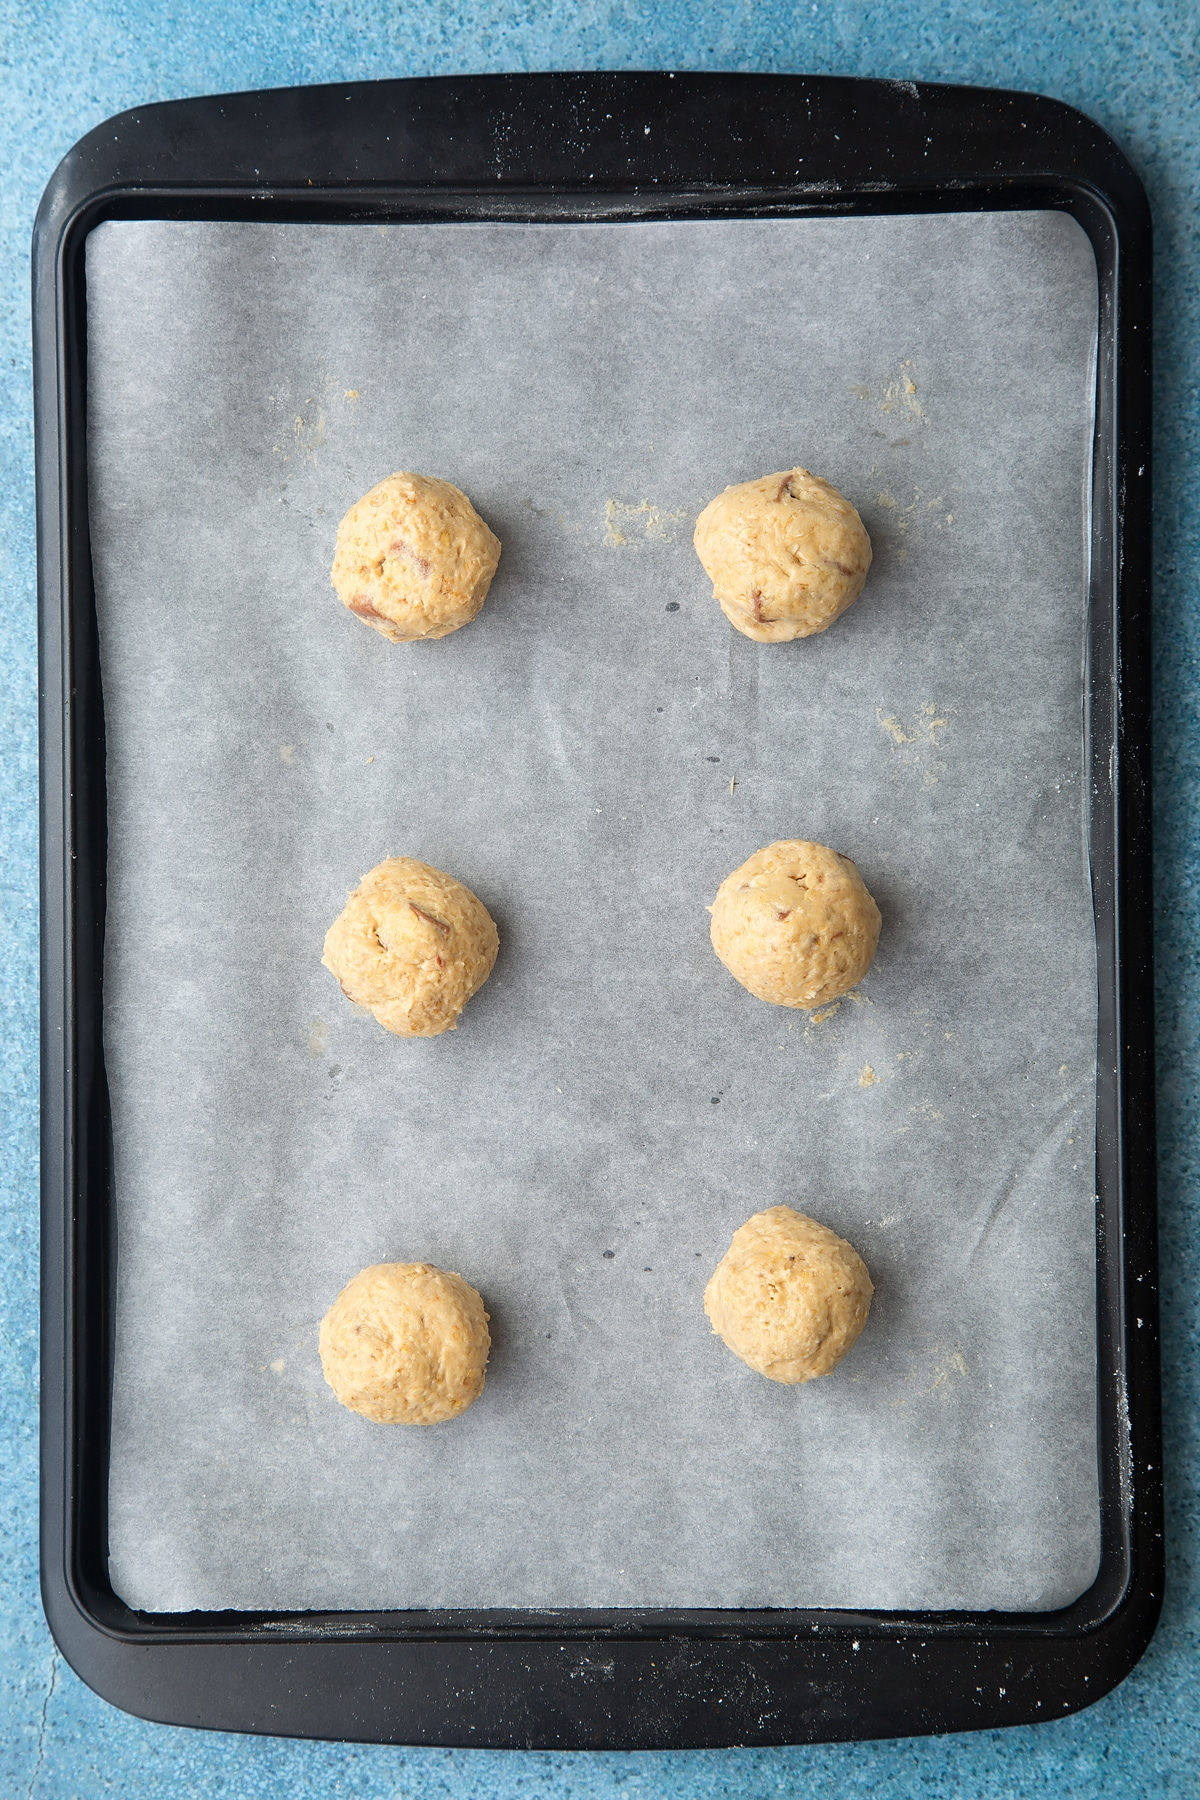 Balls of cookie monster cookie dough on baking tray lined with baking paper.